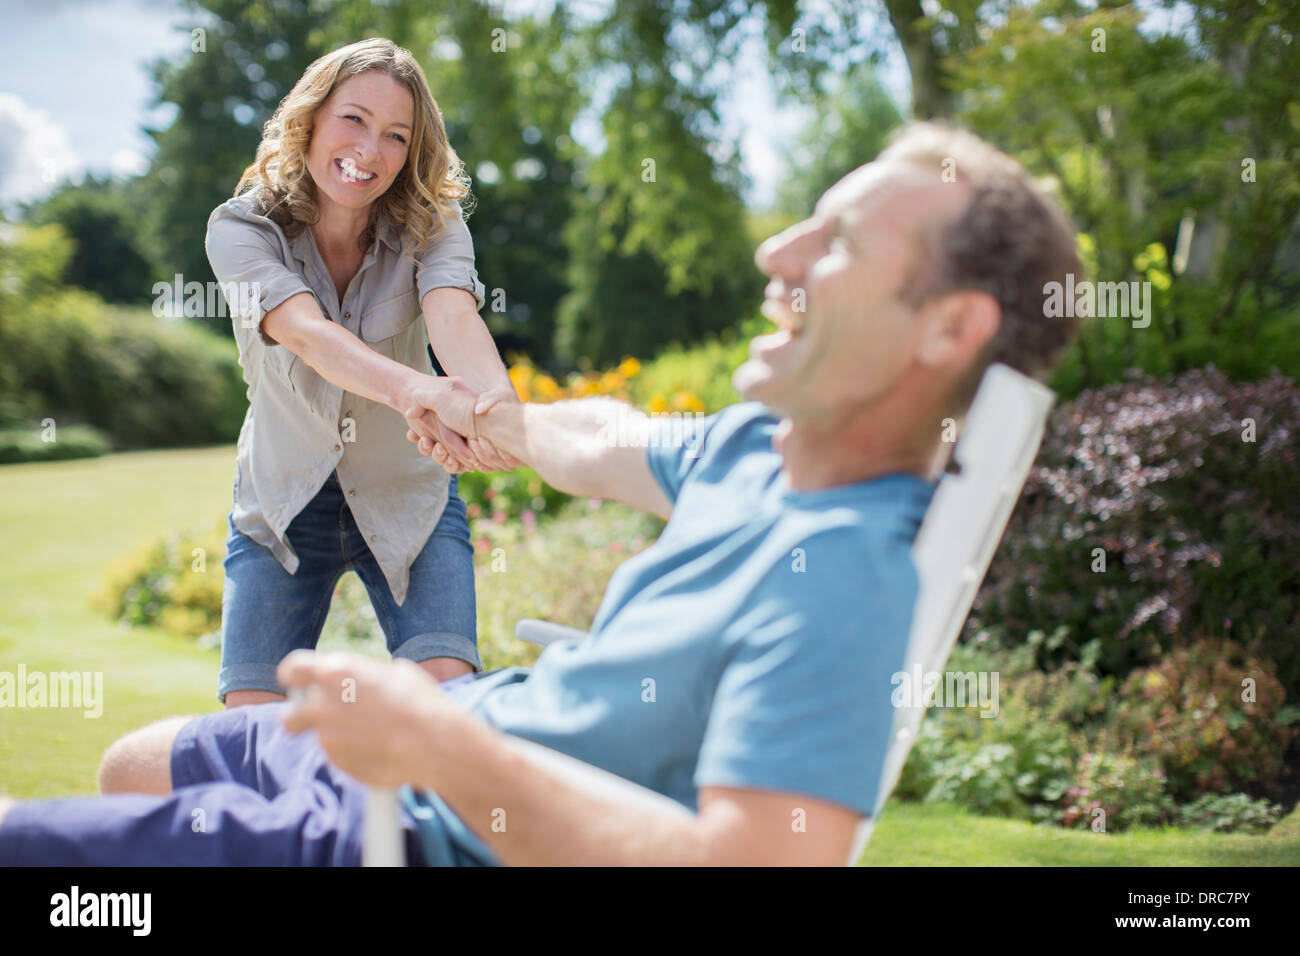 Woman pulling boyfriend out of chair in backyard - Stock Image